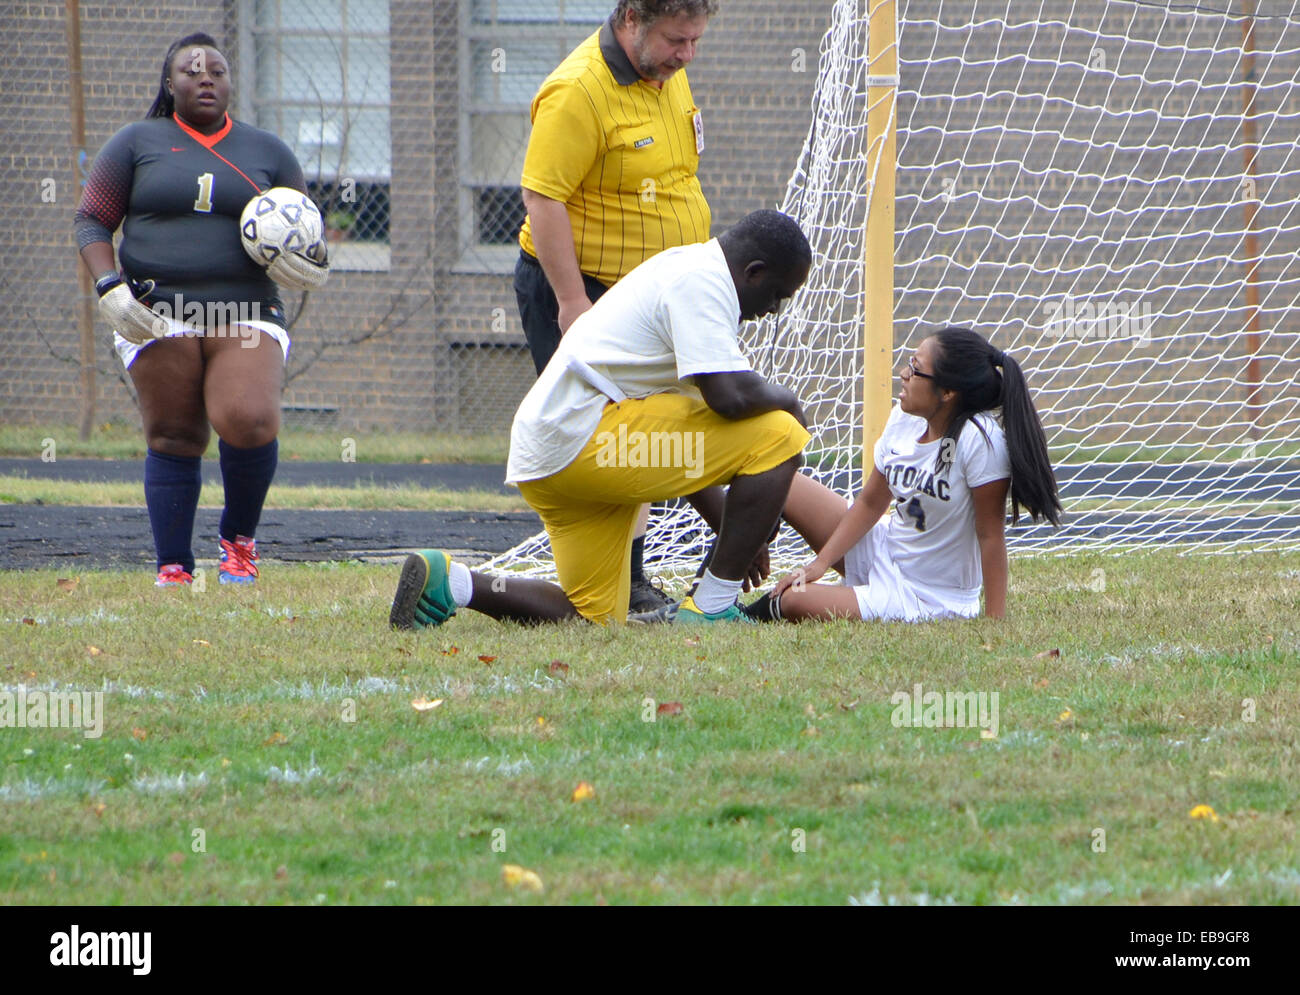 injured female soccer player is checked out by the coach and referee at a soccer game in Oxon Hills, Md - Stock Image